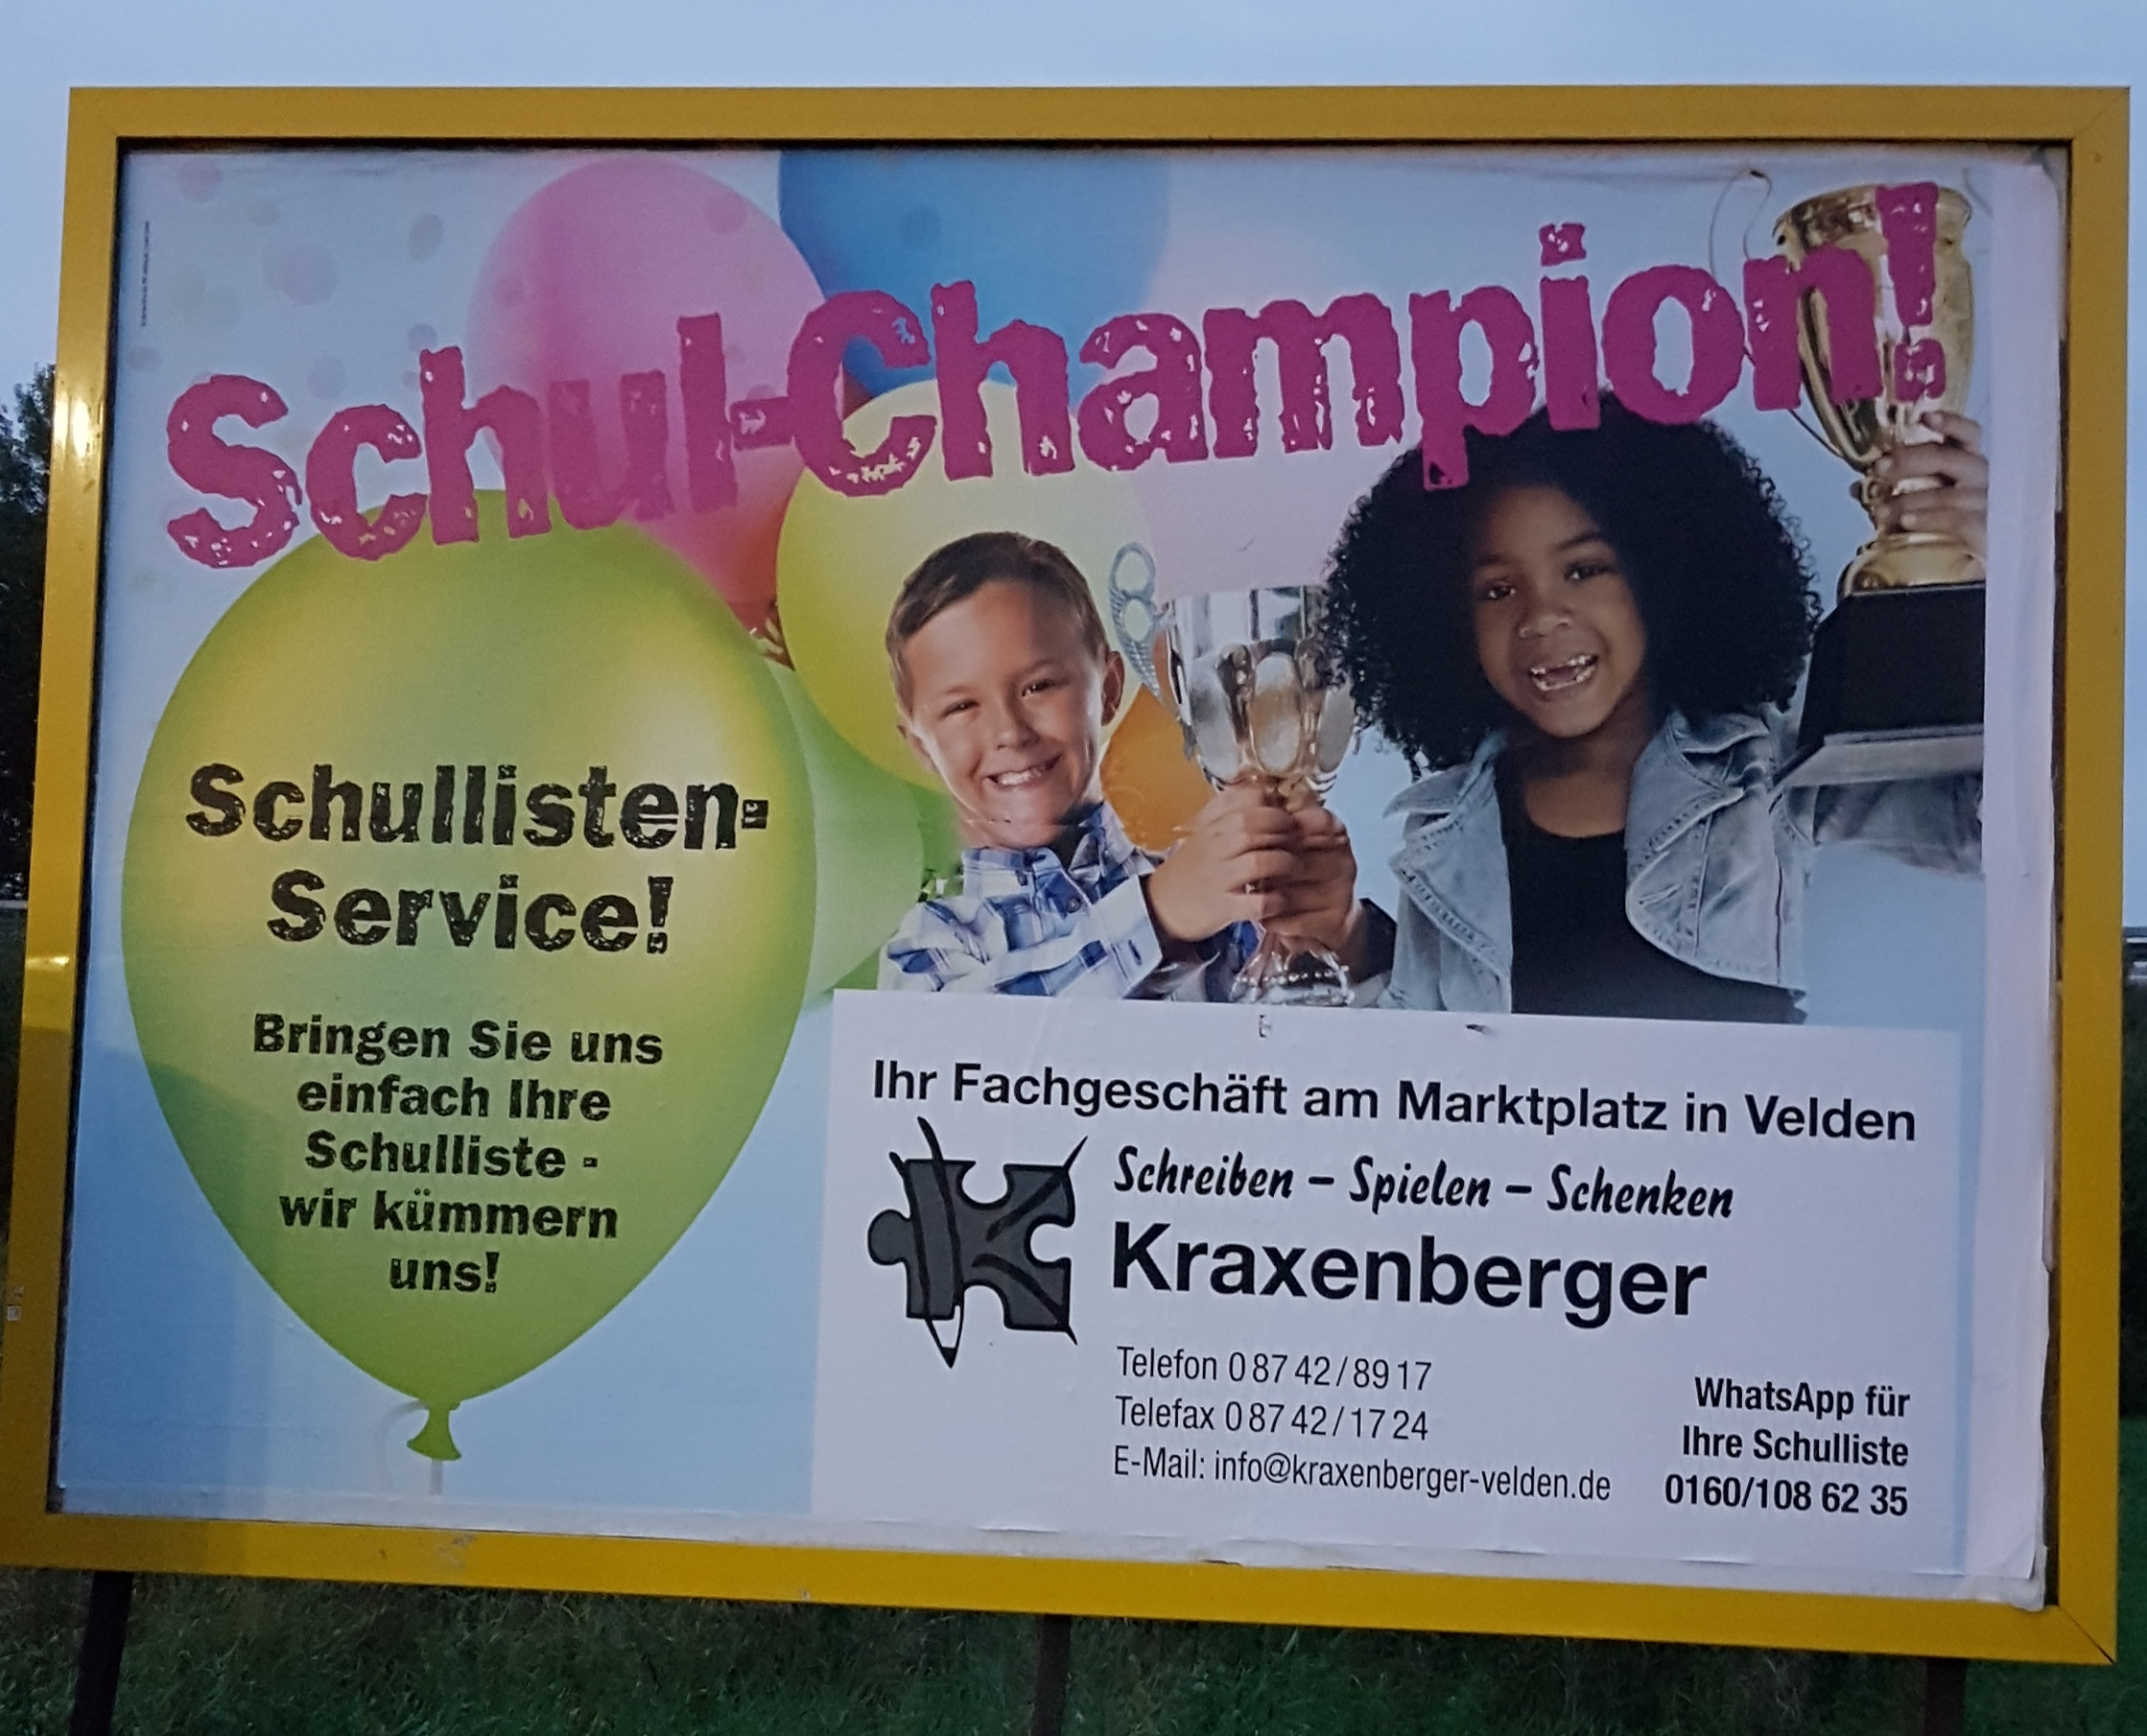 Schul-Champion